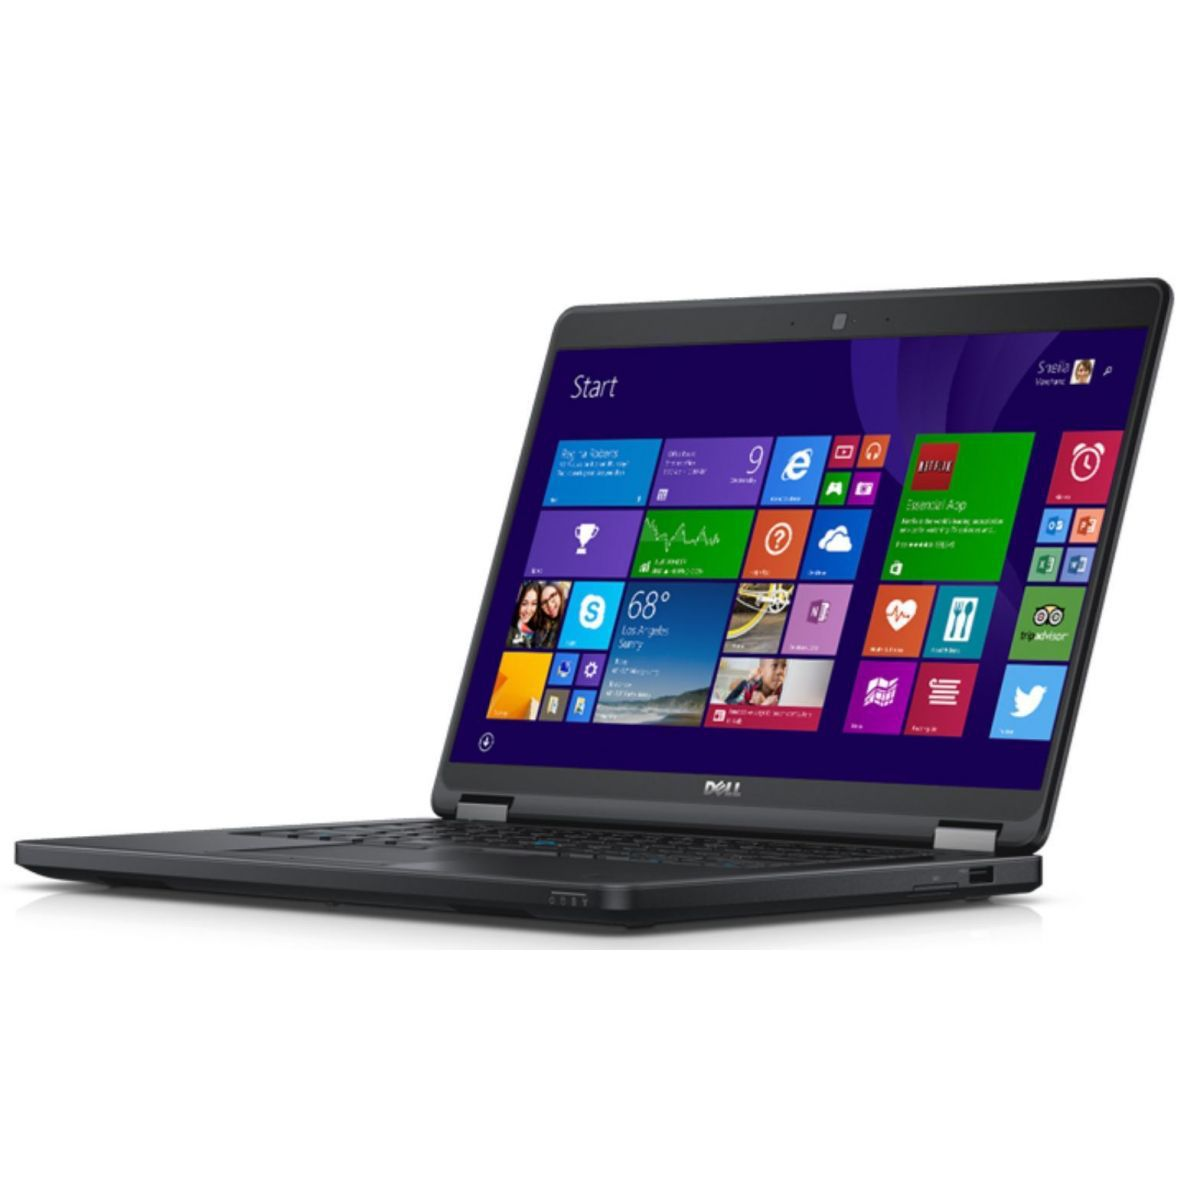 "Notebook DELL Latitude Ultrabook E5450 - Intel Core i5 VPro , 8GB de Memória, HD de 1TB, Wireless AC, Bluetooth, Tela LED  de 14""  Windows 10 Pro"